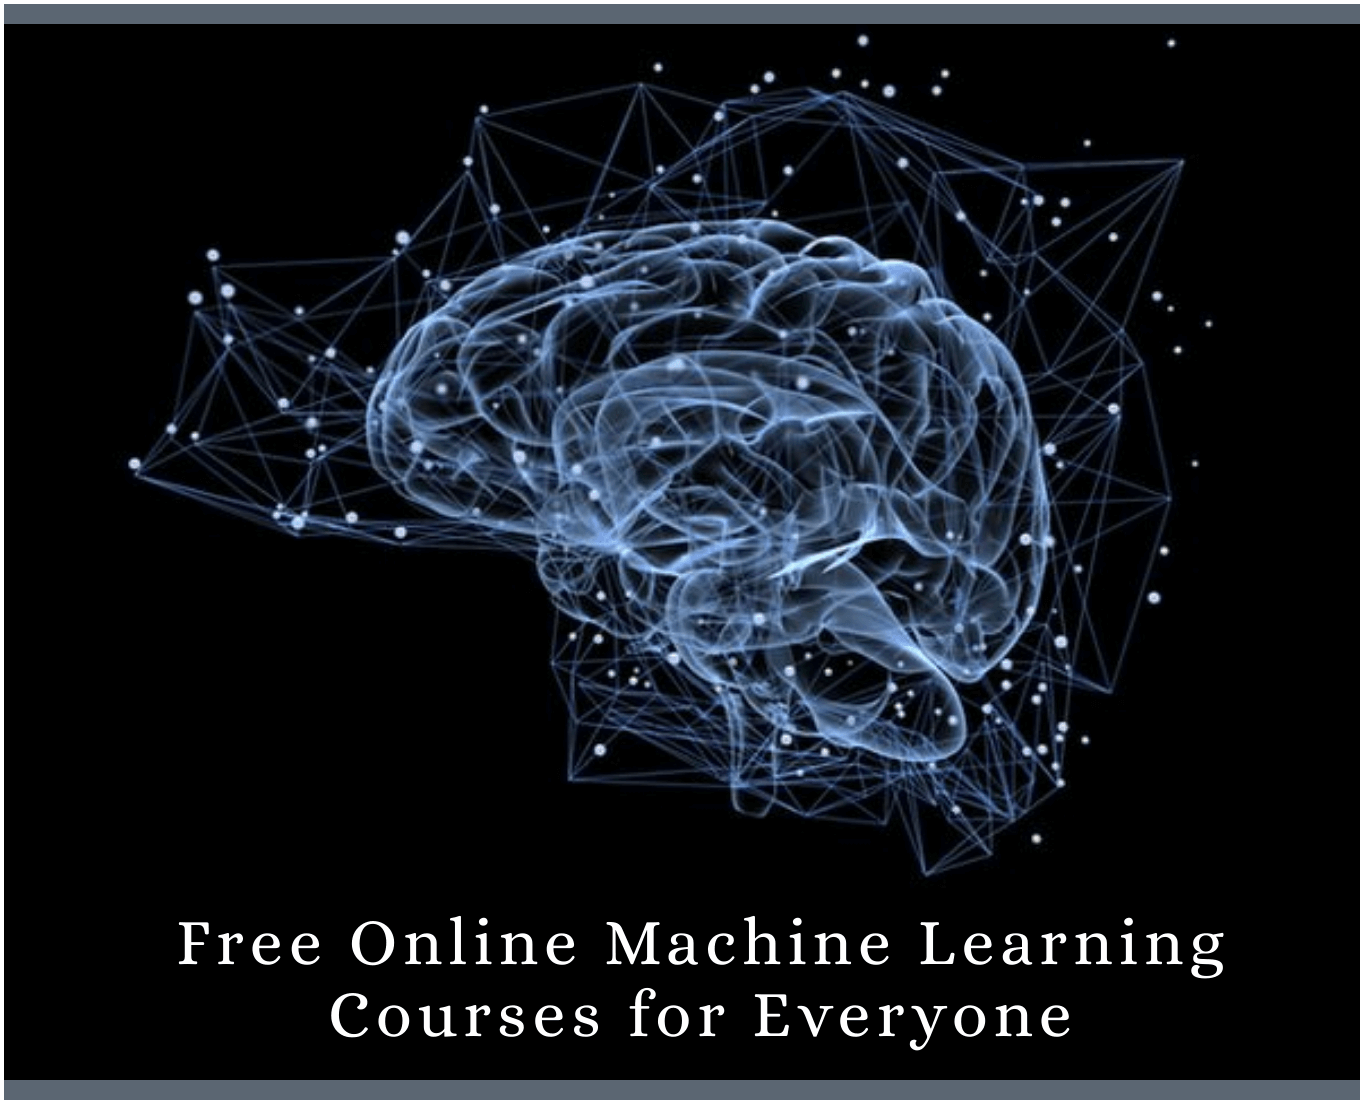 free-online-machine-learning-courses